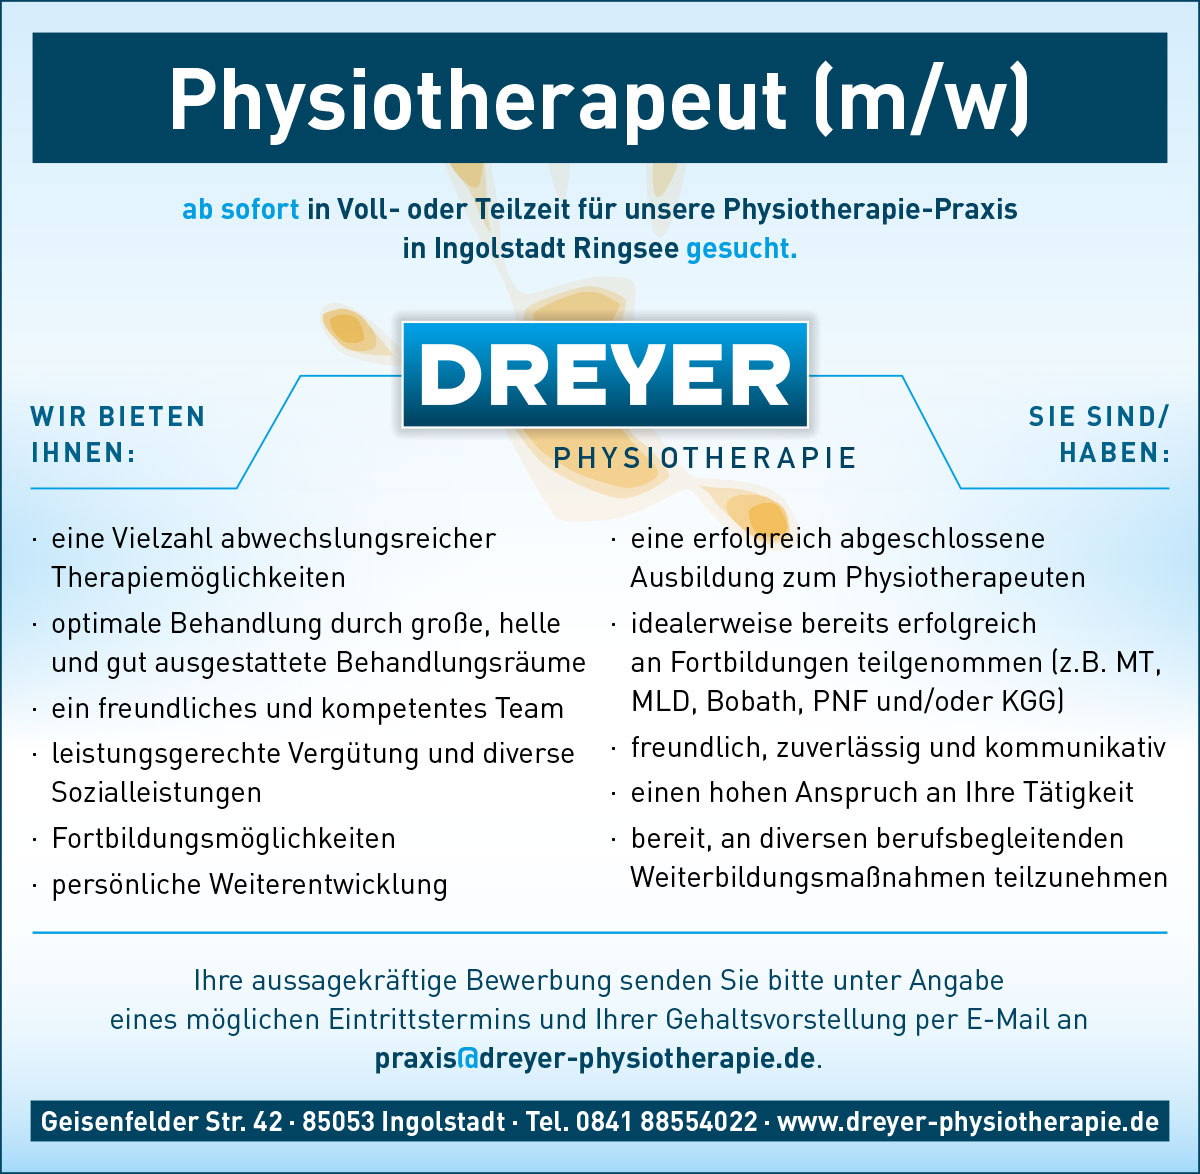 Physiotherapeut gesucht